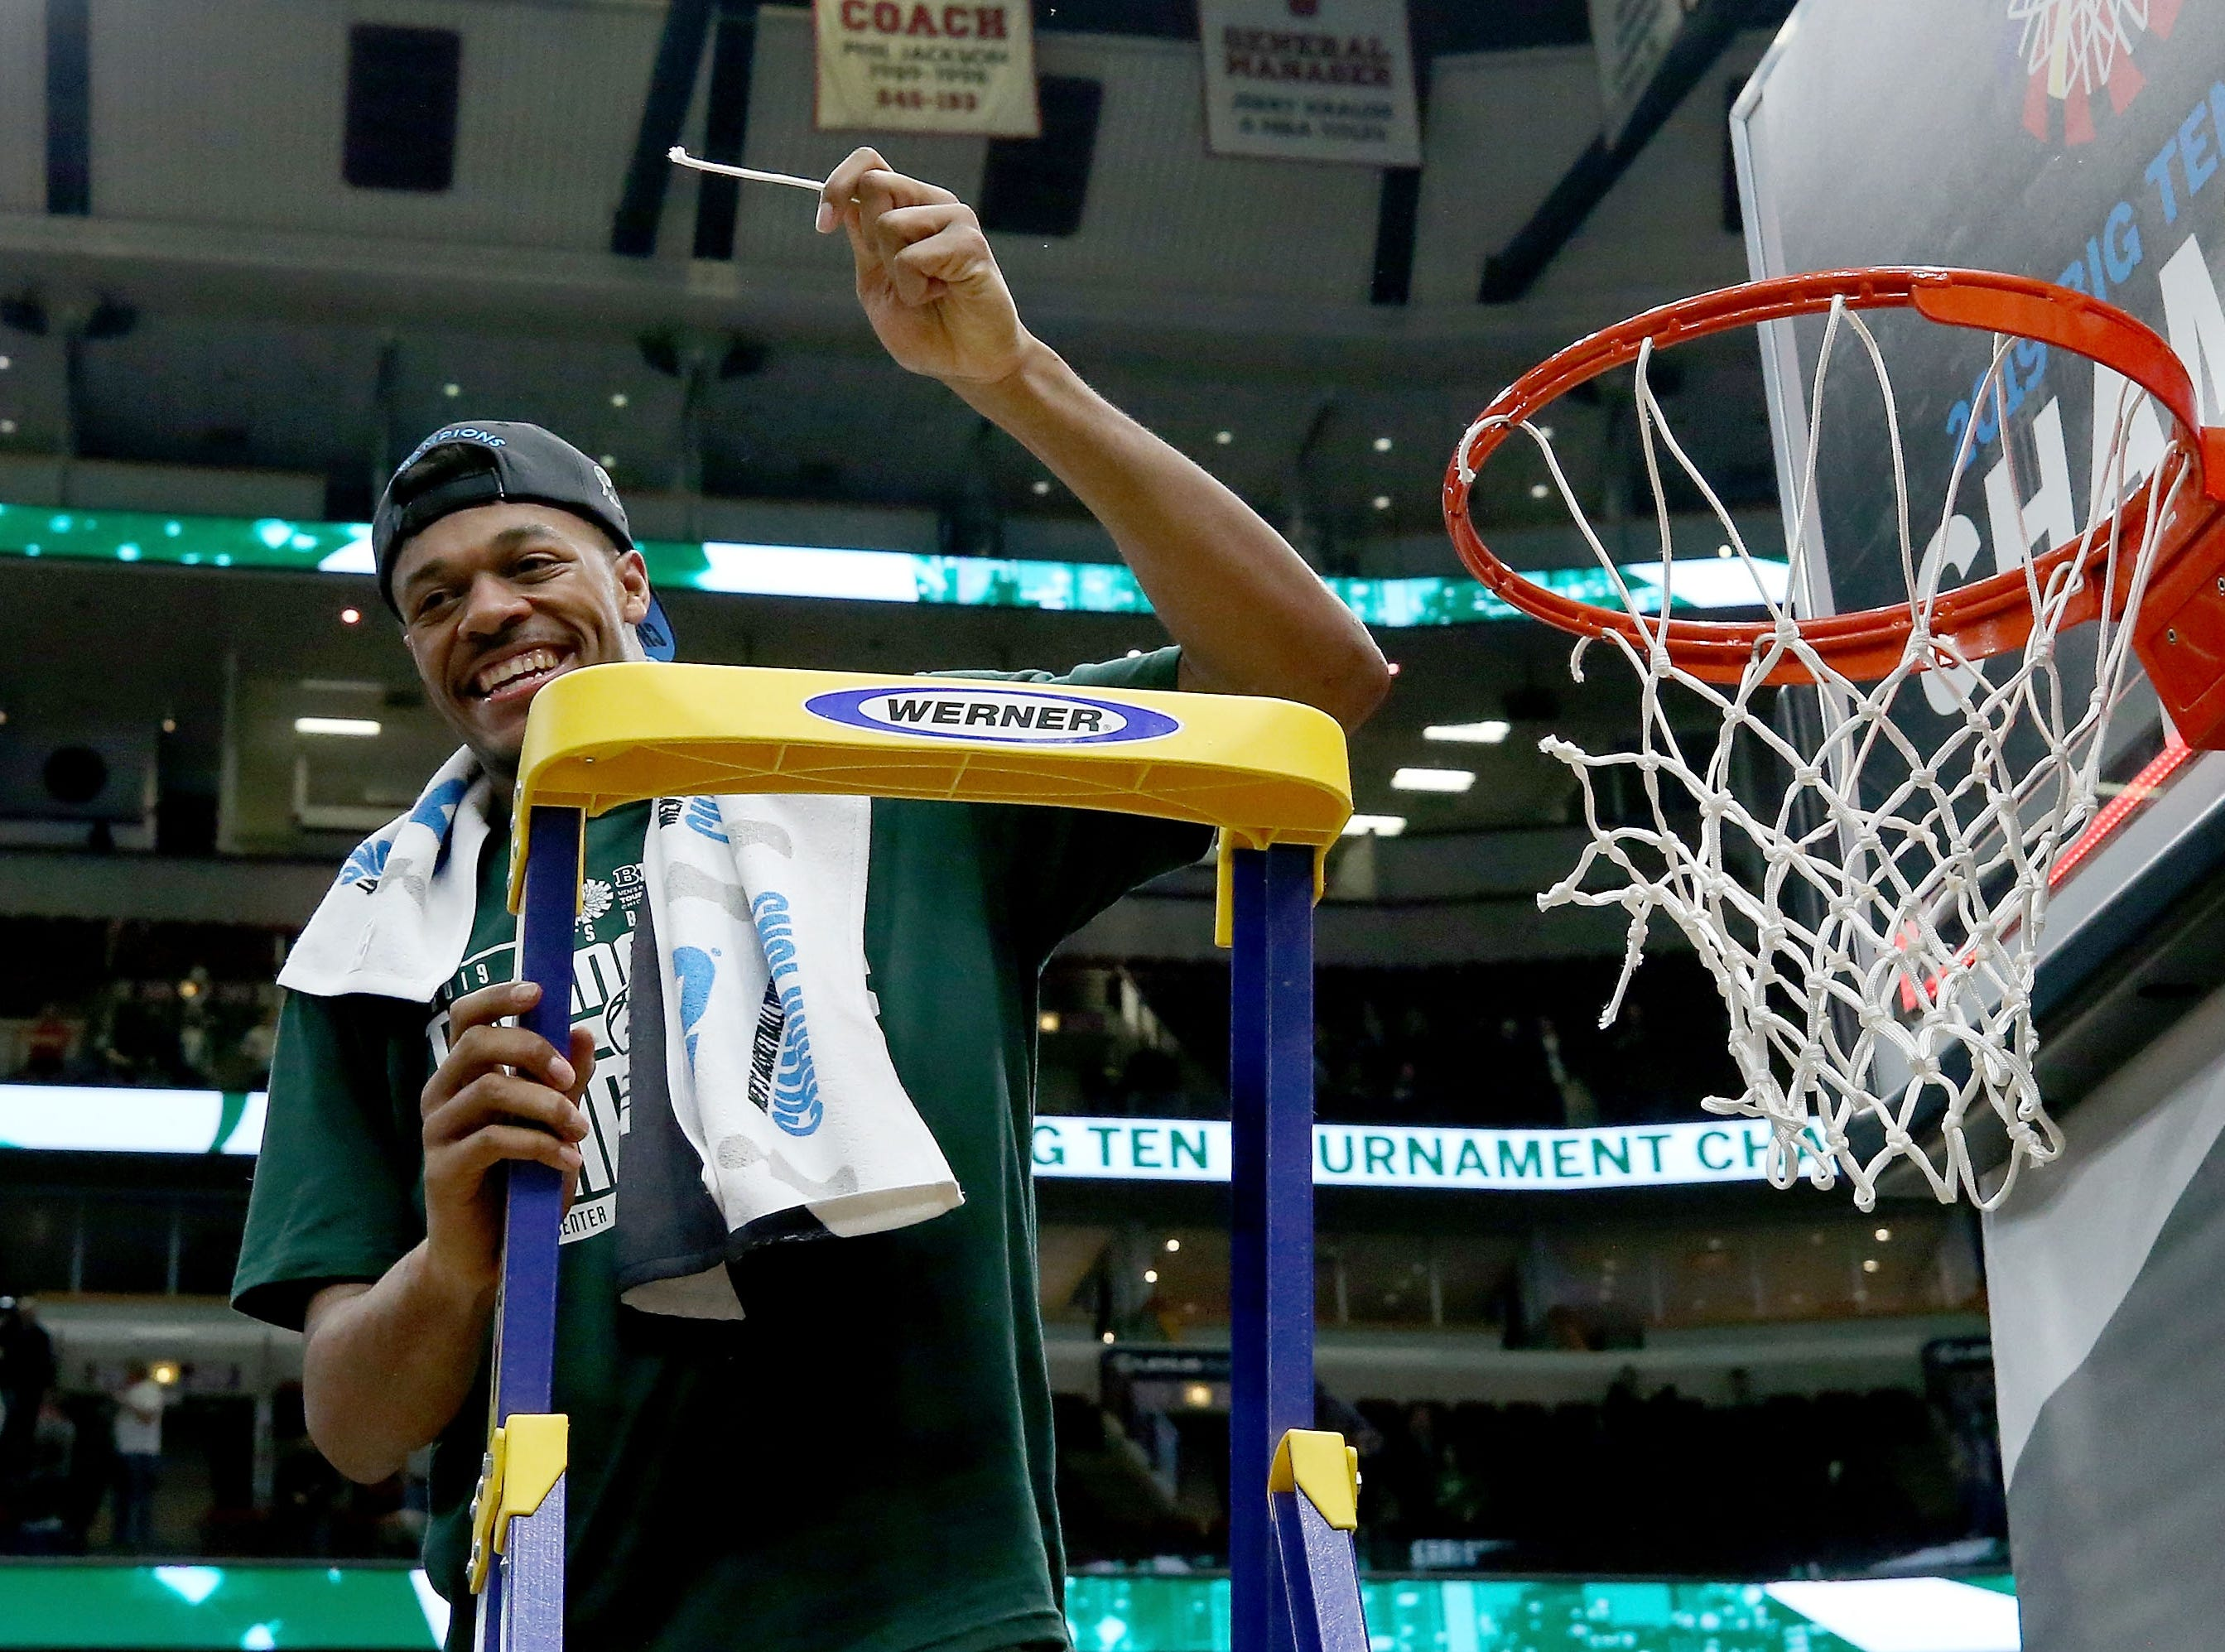 CHICAGO, ILLINOIS - MARCH 17:  Xavier Tillman #23 of the Michigan State Spartans cuts down the net after beating the Michigan Wolverines 65-60 in the championship game of the Big Ten Basketball Tournament at the United Center on March 17, 2019 in Chicago, Illinois. (Photo by Jonathan Daniel/Getty Images)